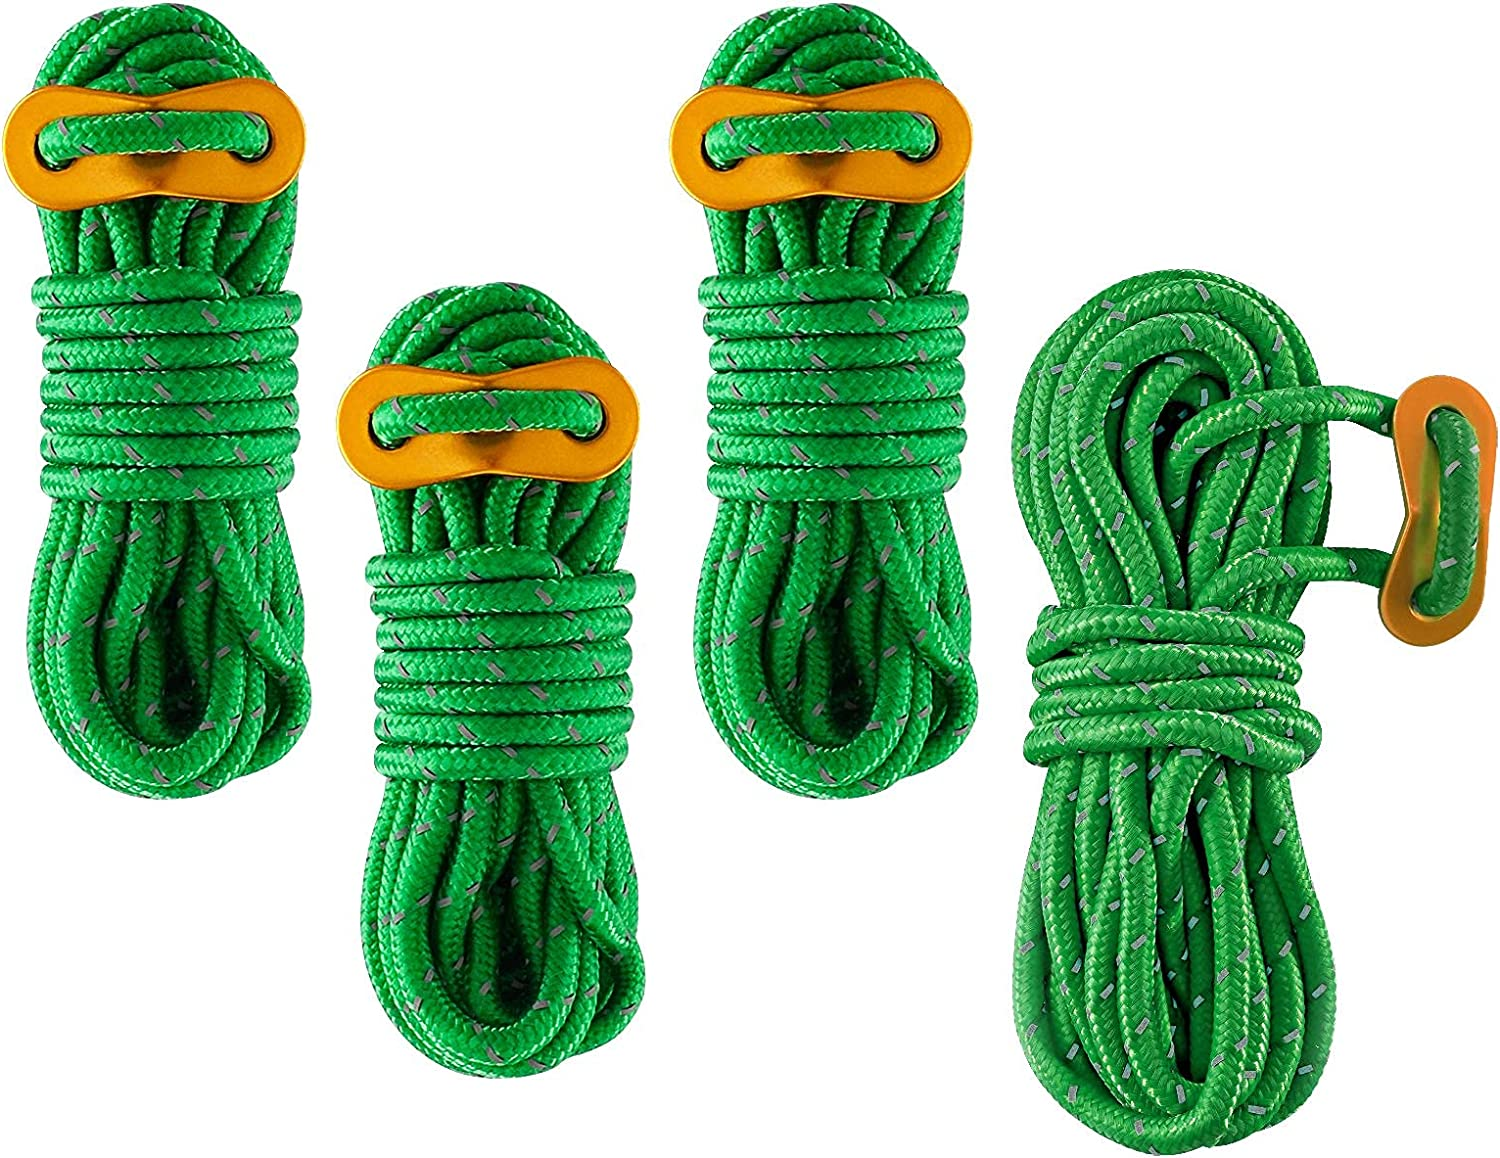 Balit discount Reflective Nylon Paracord Parachute Tent Pull F Cord Rope Price reduction